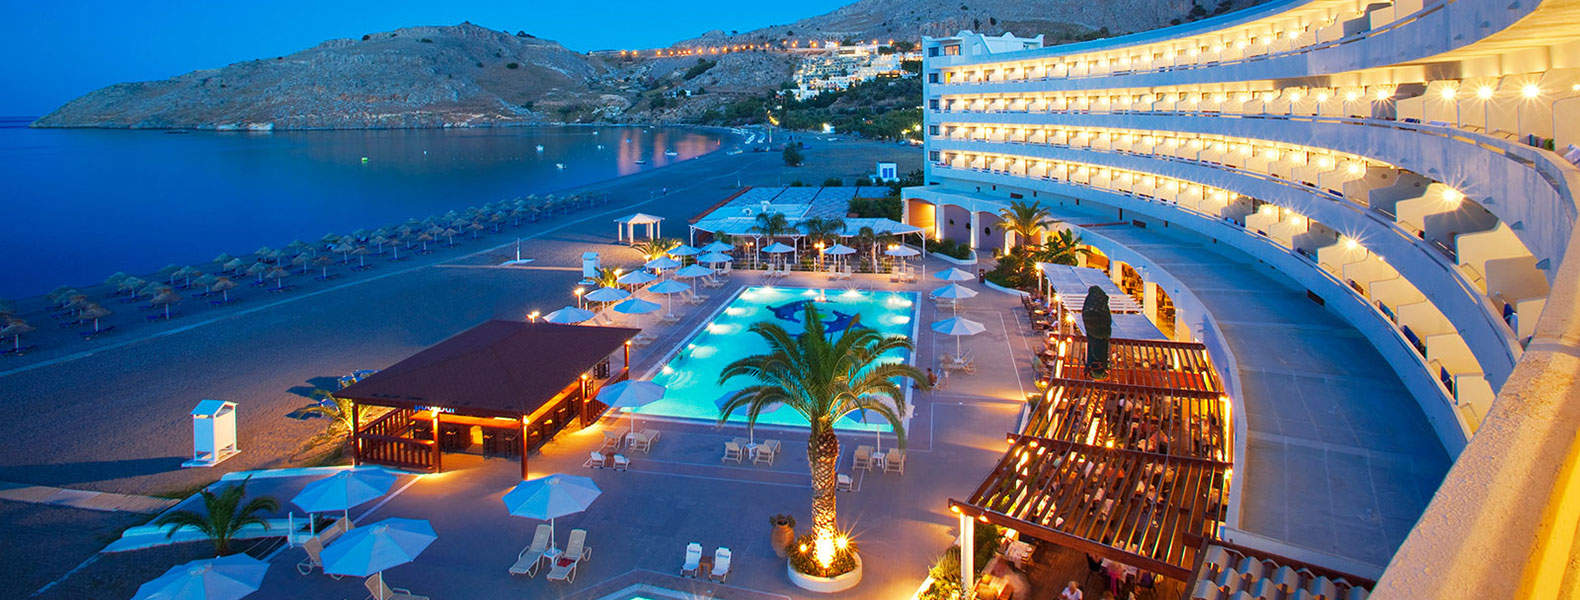 sentido lindos bay resort & spa